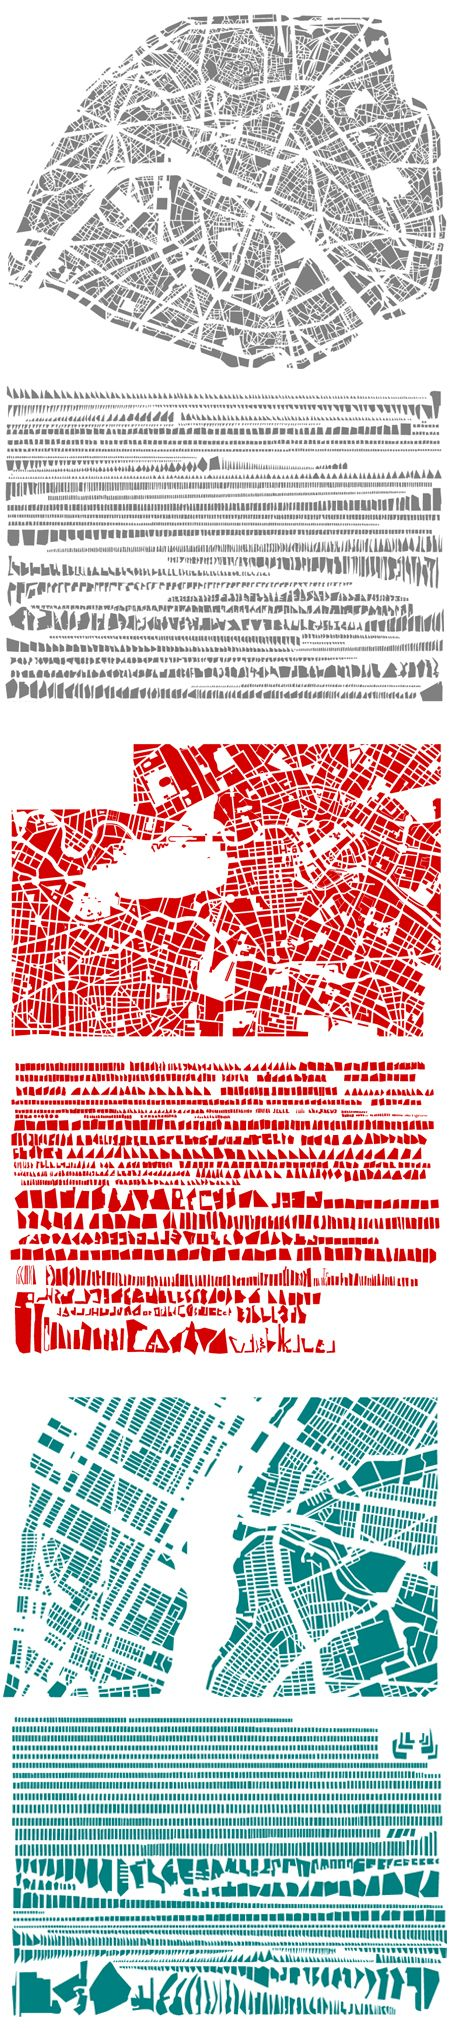 Deconstructive Cities: Paris, Berlin, and New York… completely dissected into little bits, and then neatly organized according to shape and size by French artist Armelle Caron. www.portfolio-oomph.com Online support covering all aspects of applying to art college.